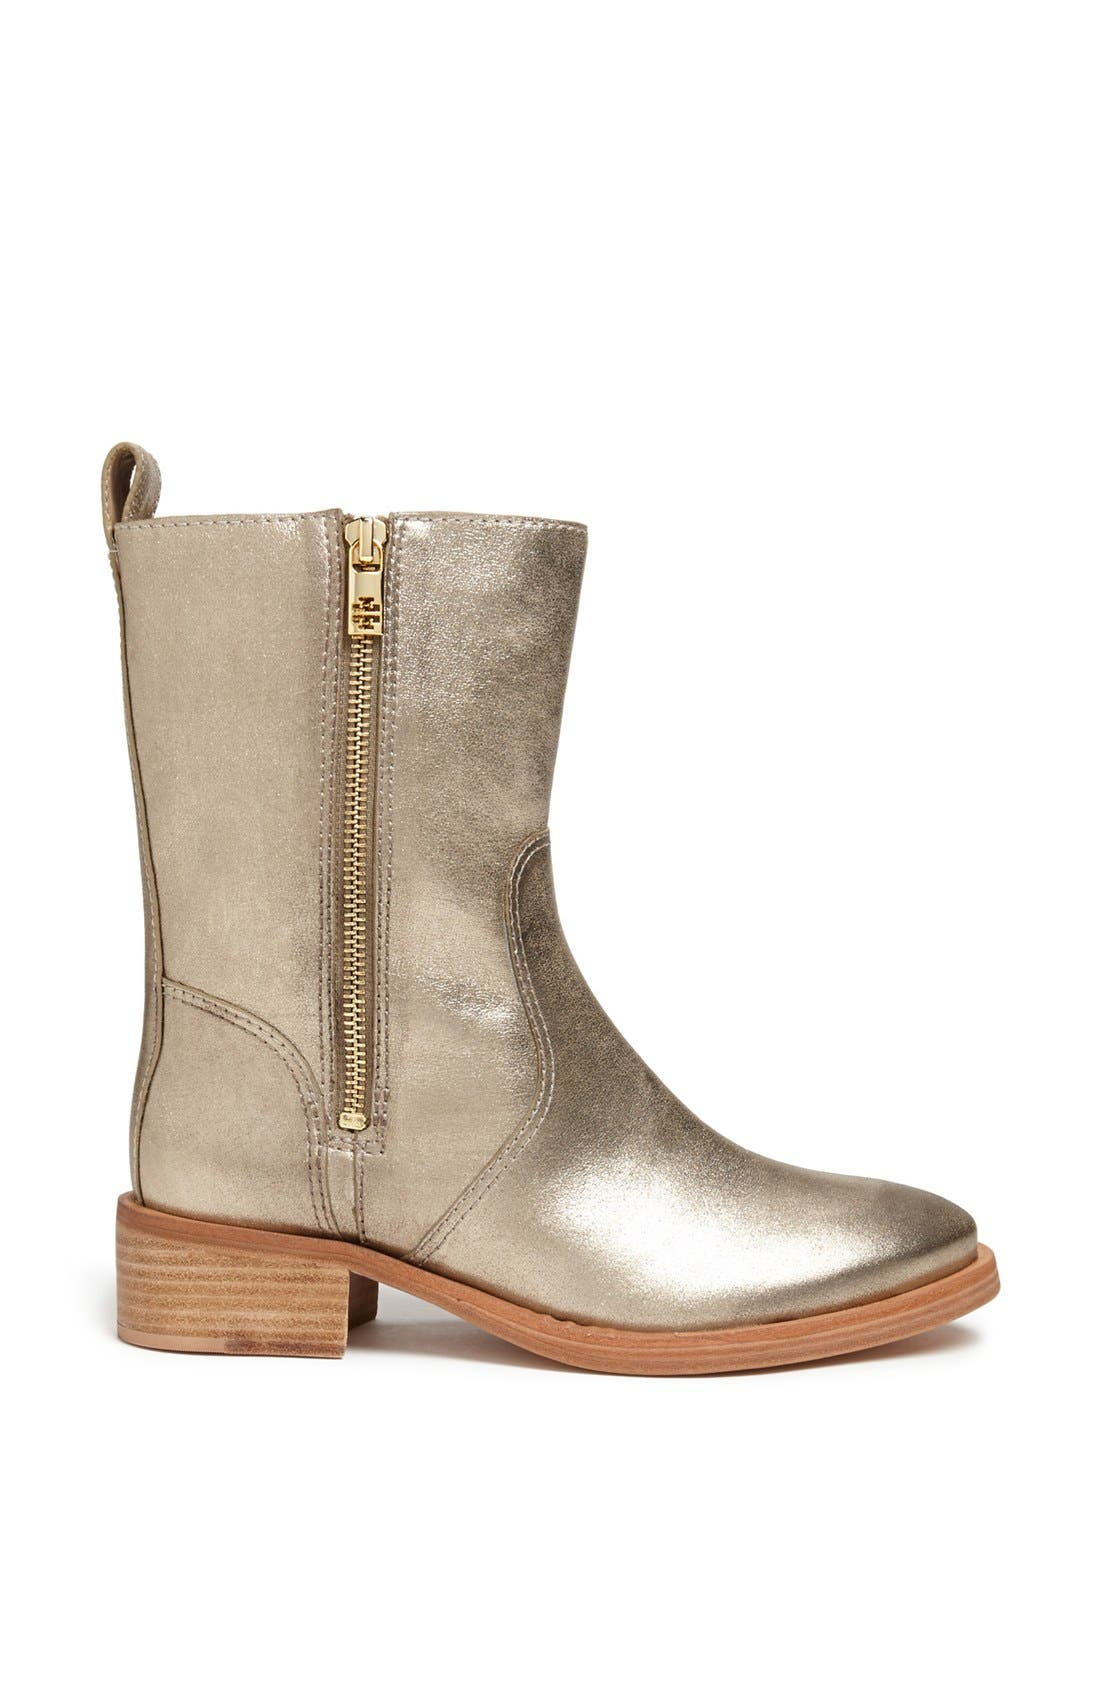 Alternate Image 1 Selected - Tory Burch 'Halle' Bootie